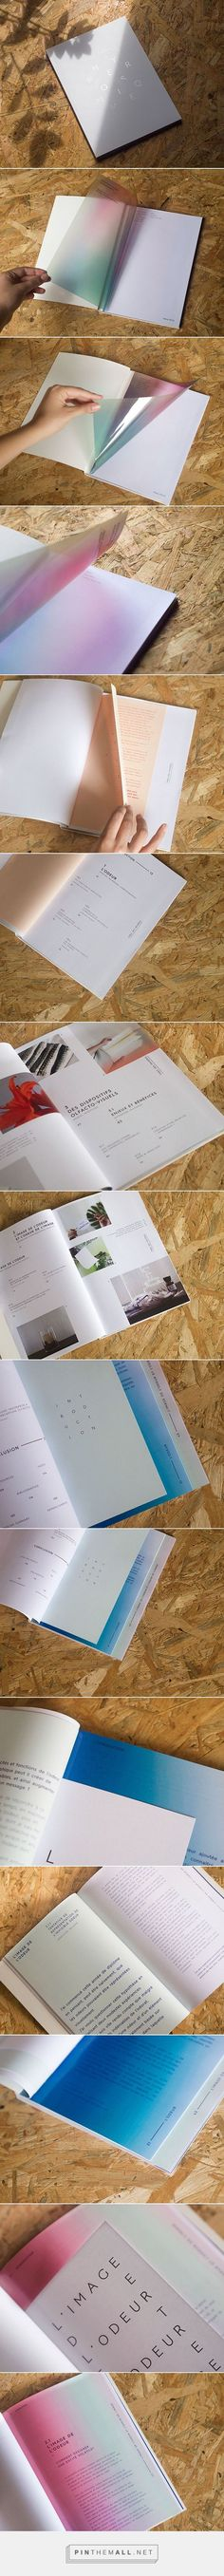 Design graphique hyperosmique on Behance... - a grouped images picture - Pin Them All: